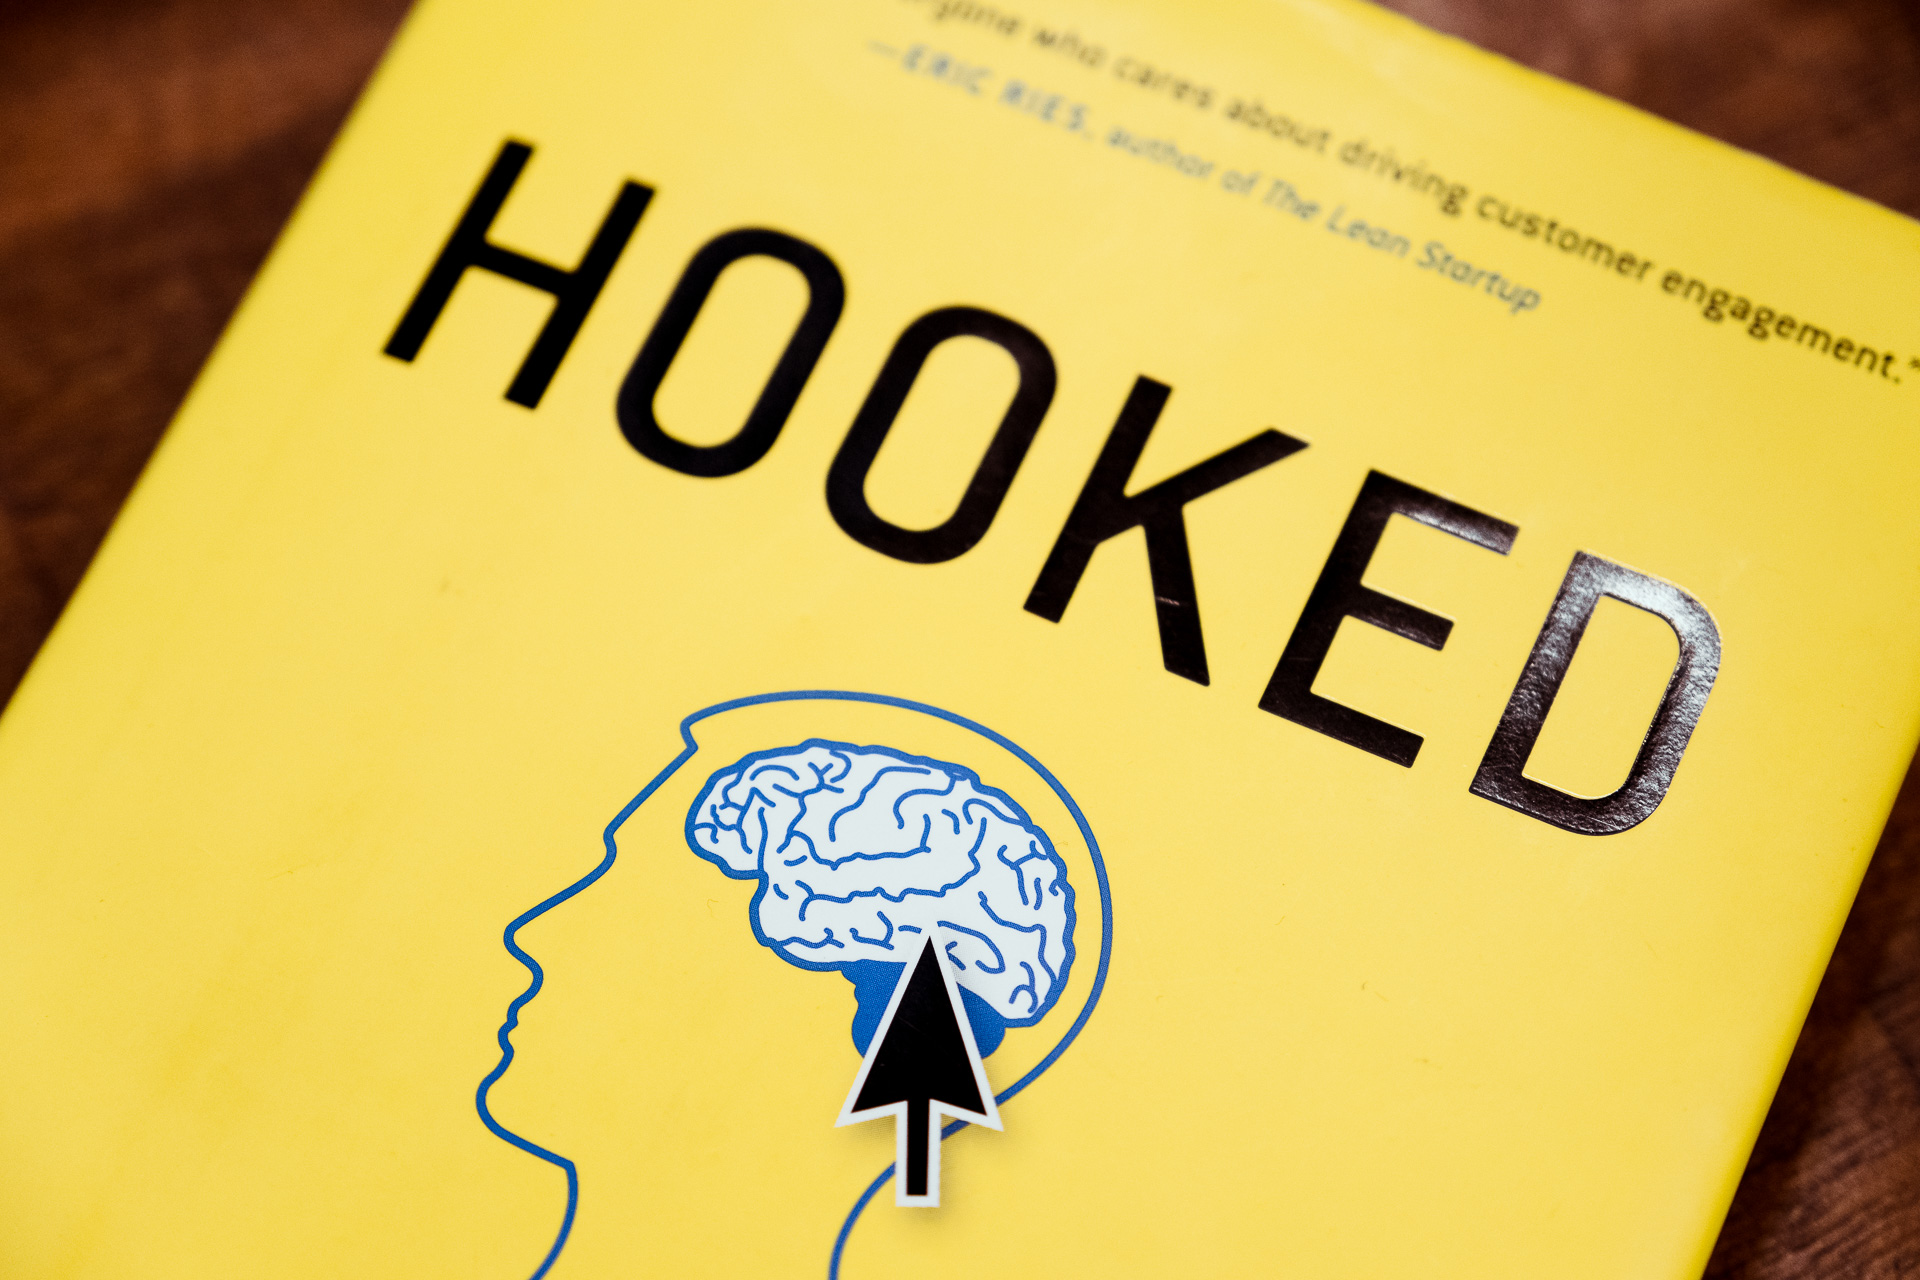 front cover of hooked book by Nir Eyal